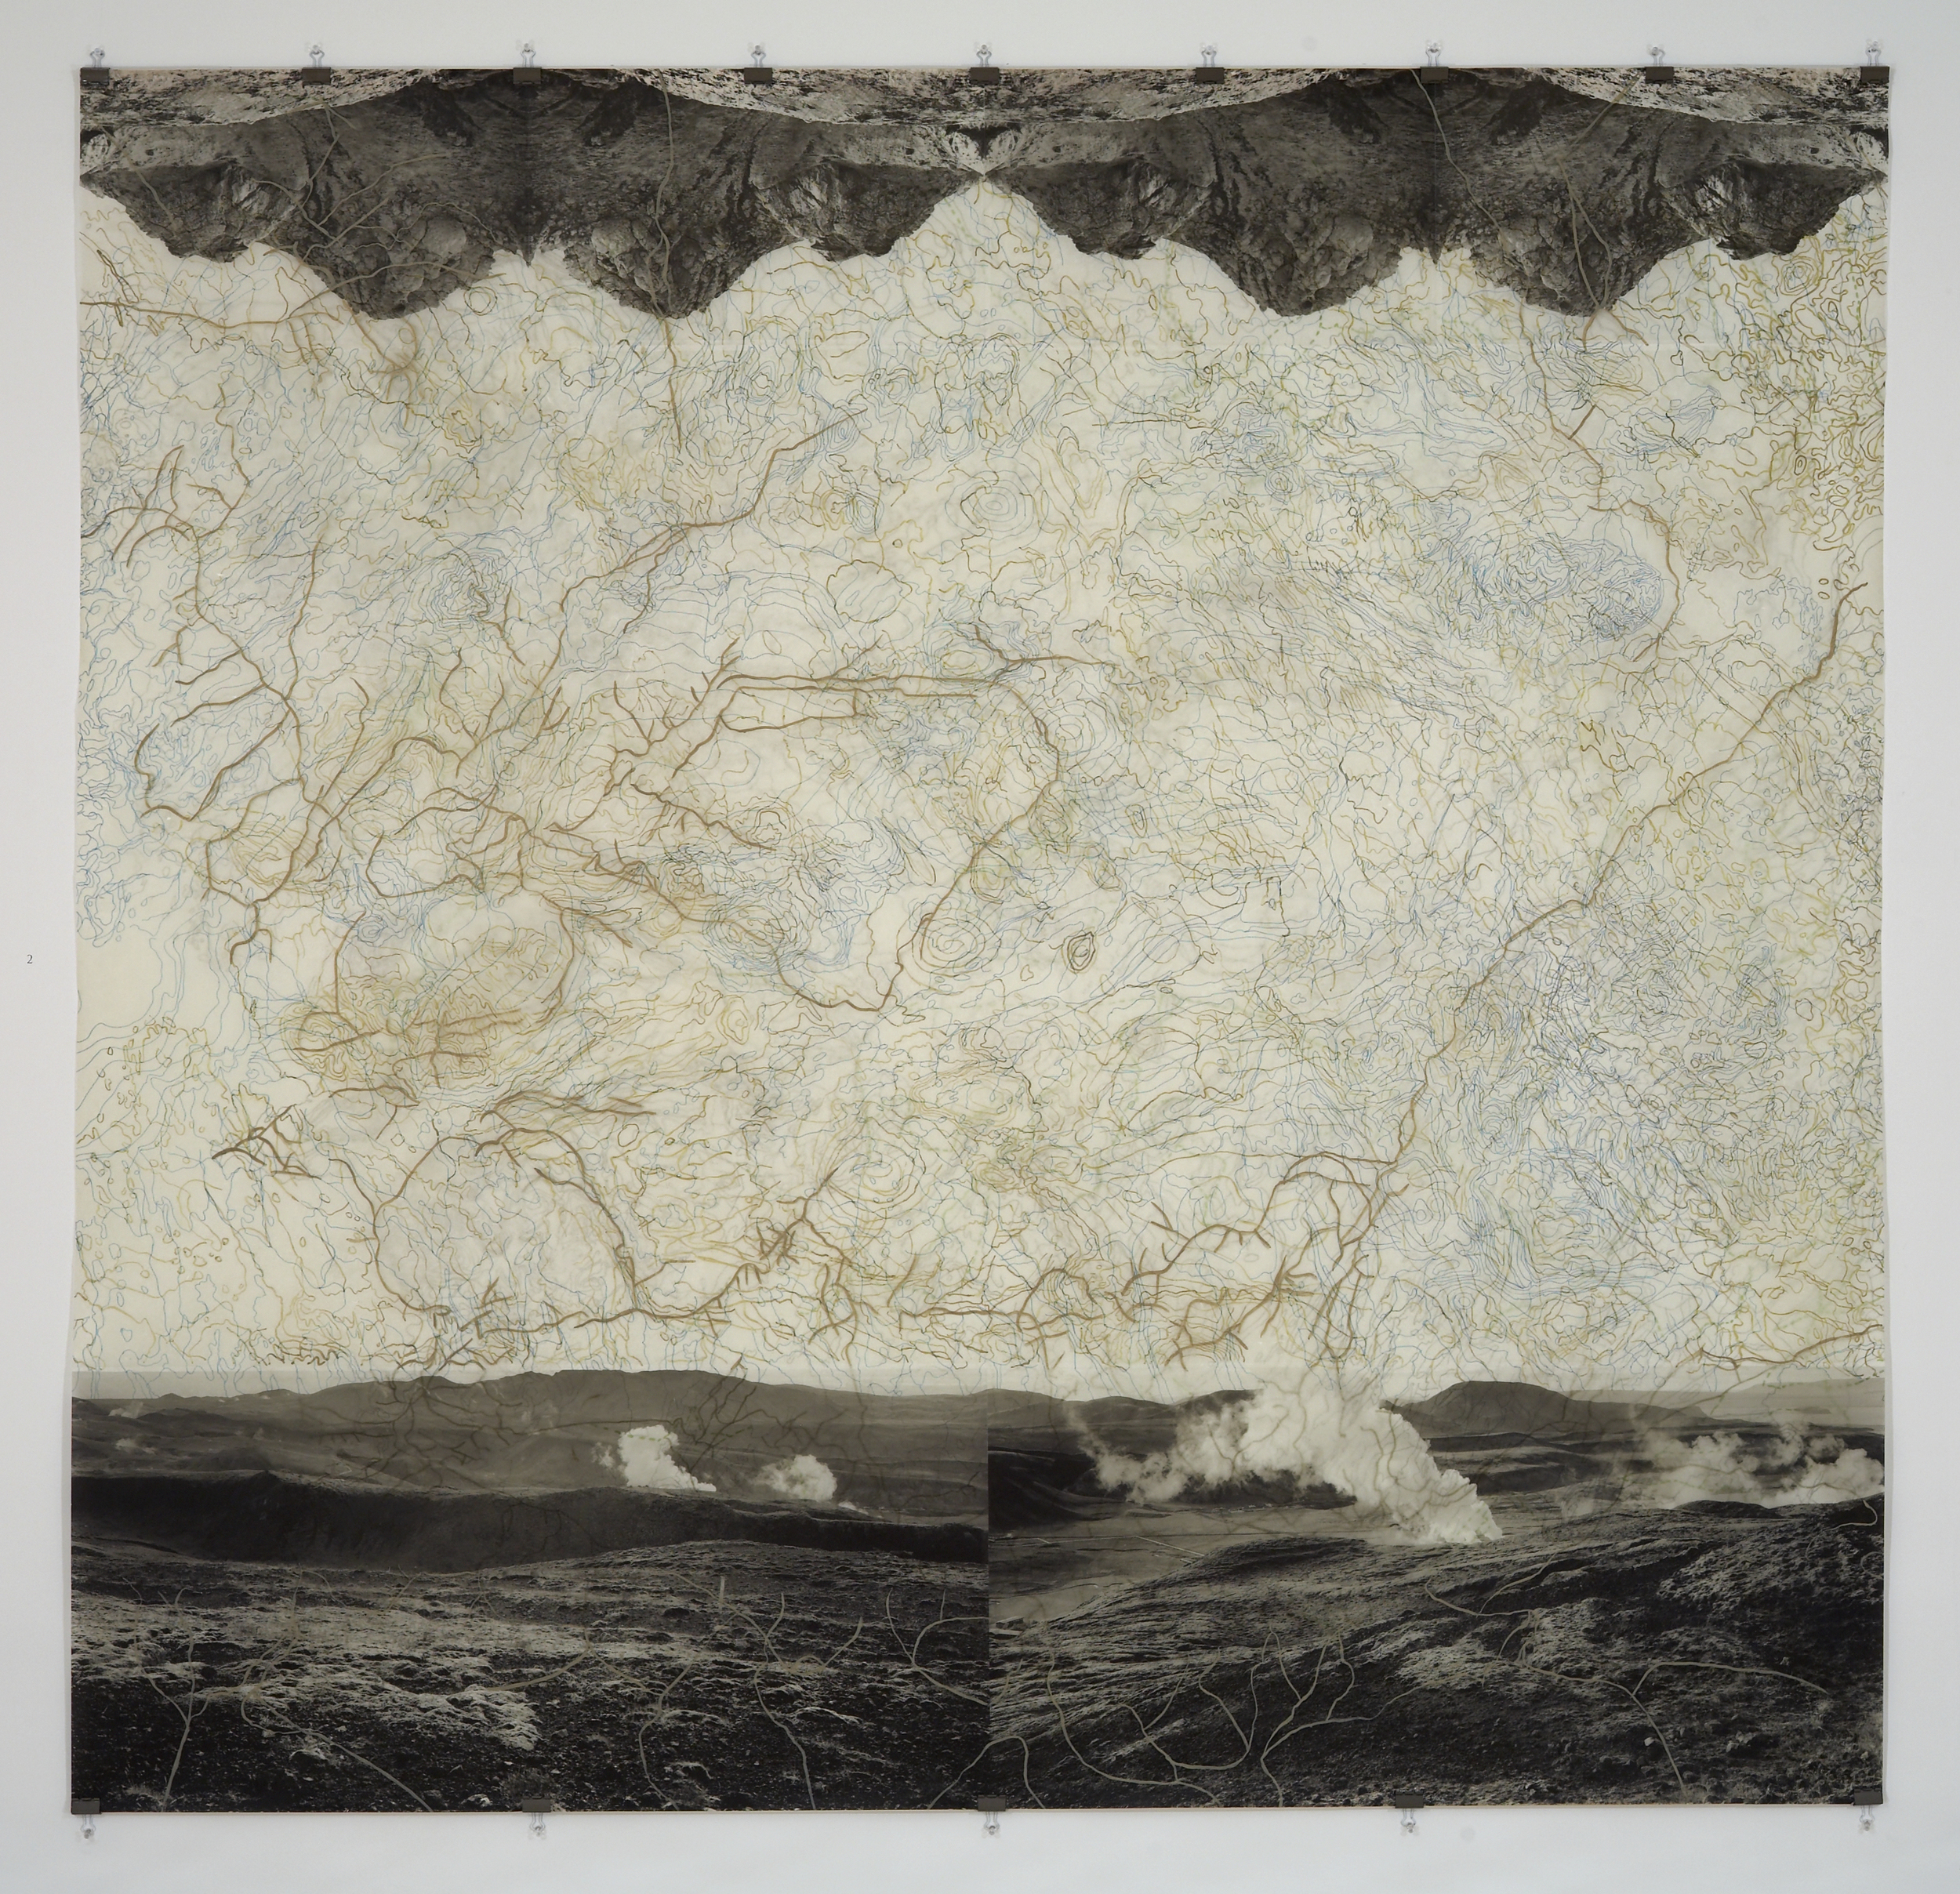 """Geothermal TopographyII, 2007   Photogravure on kozo shi, digital pigment print, oil paint and wax in layers   79.5"""" X 82.5"""""""